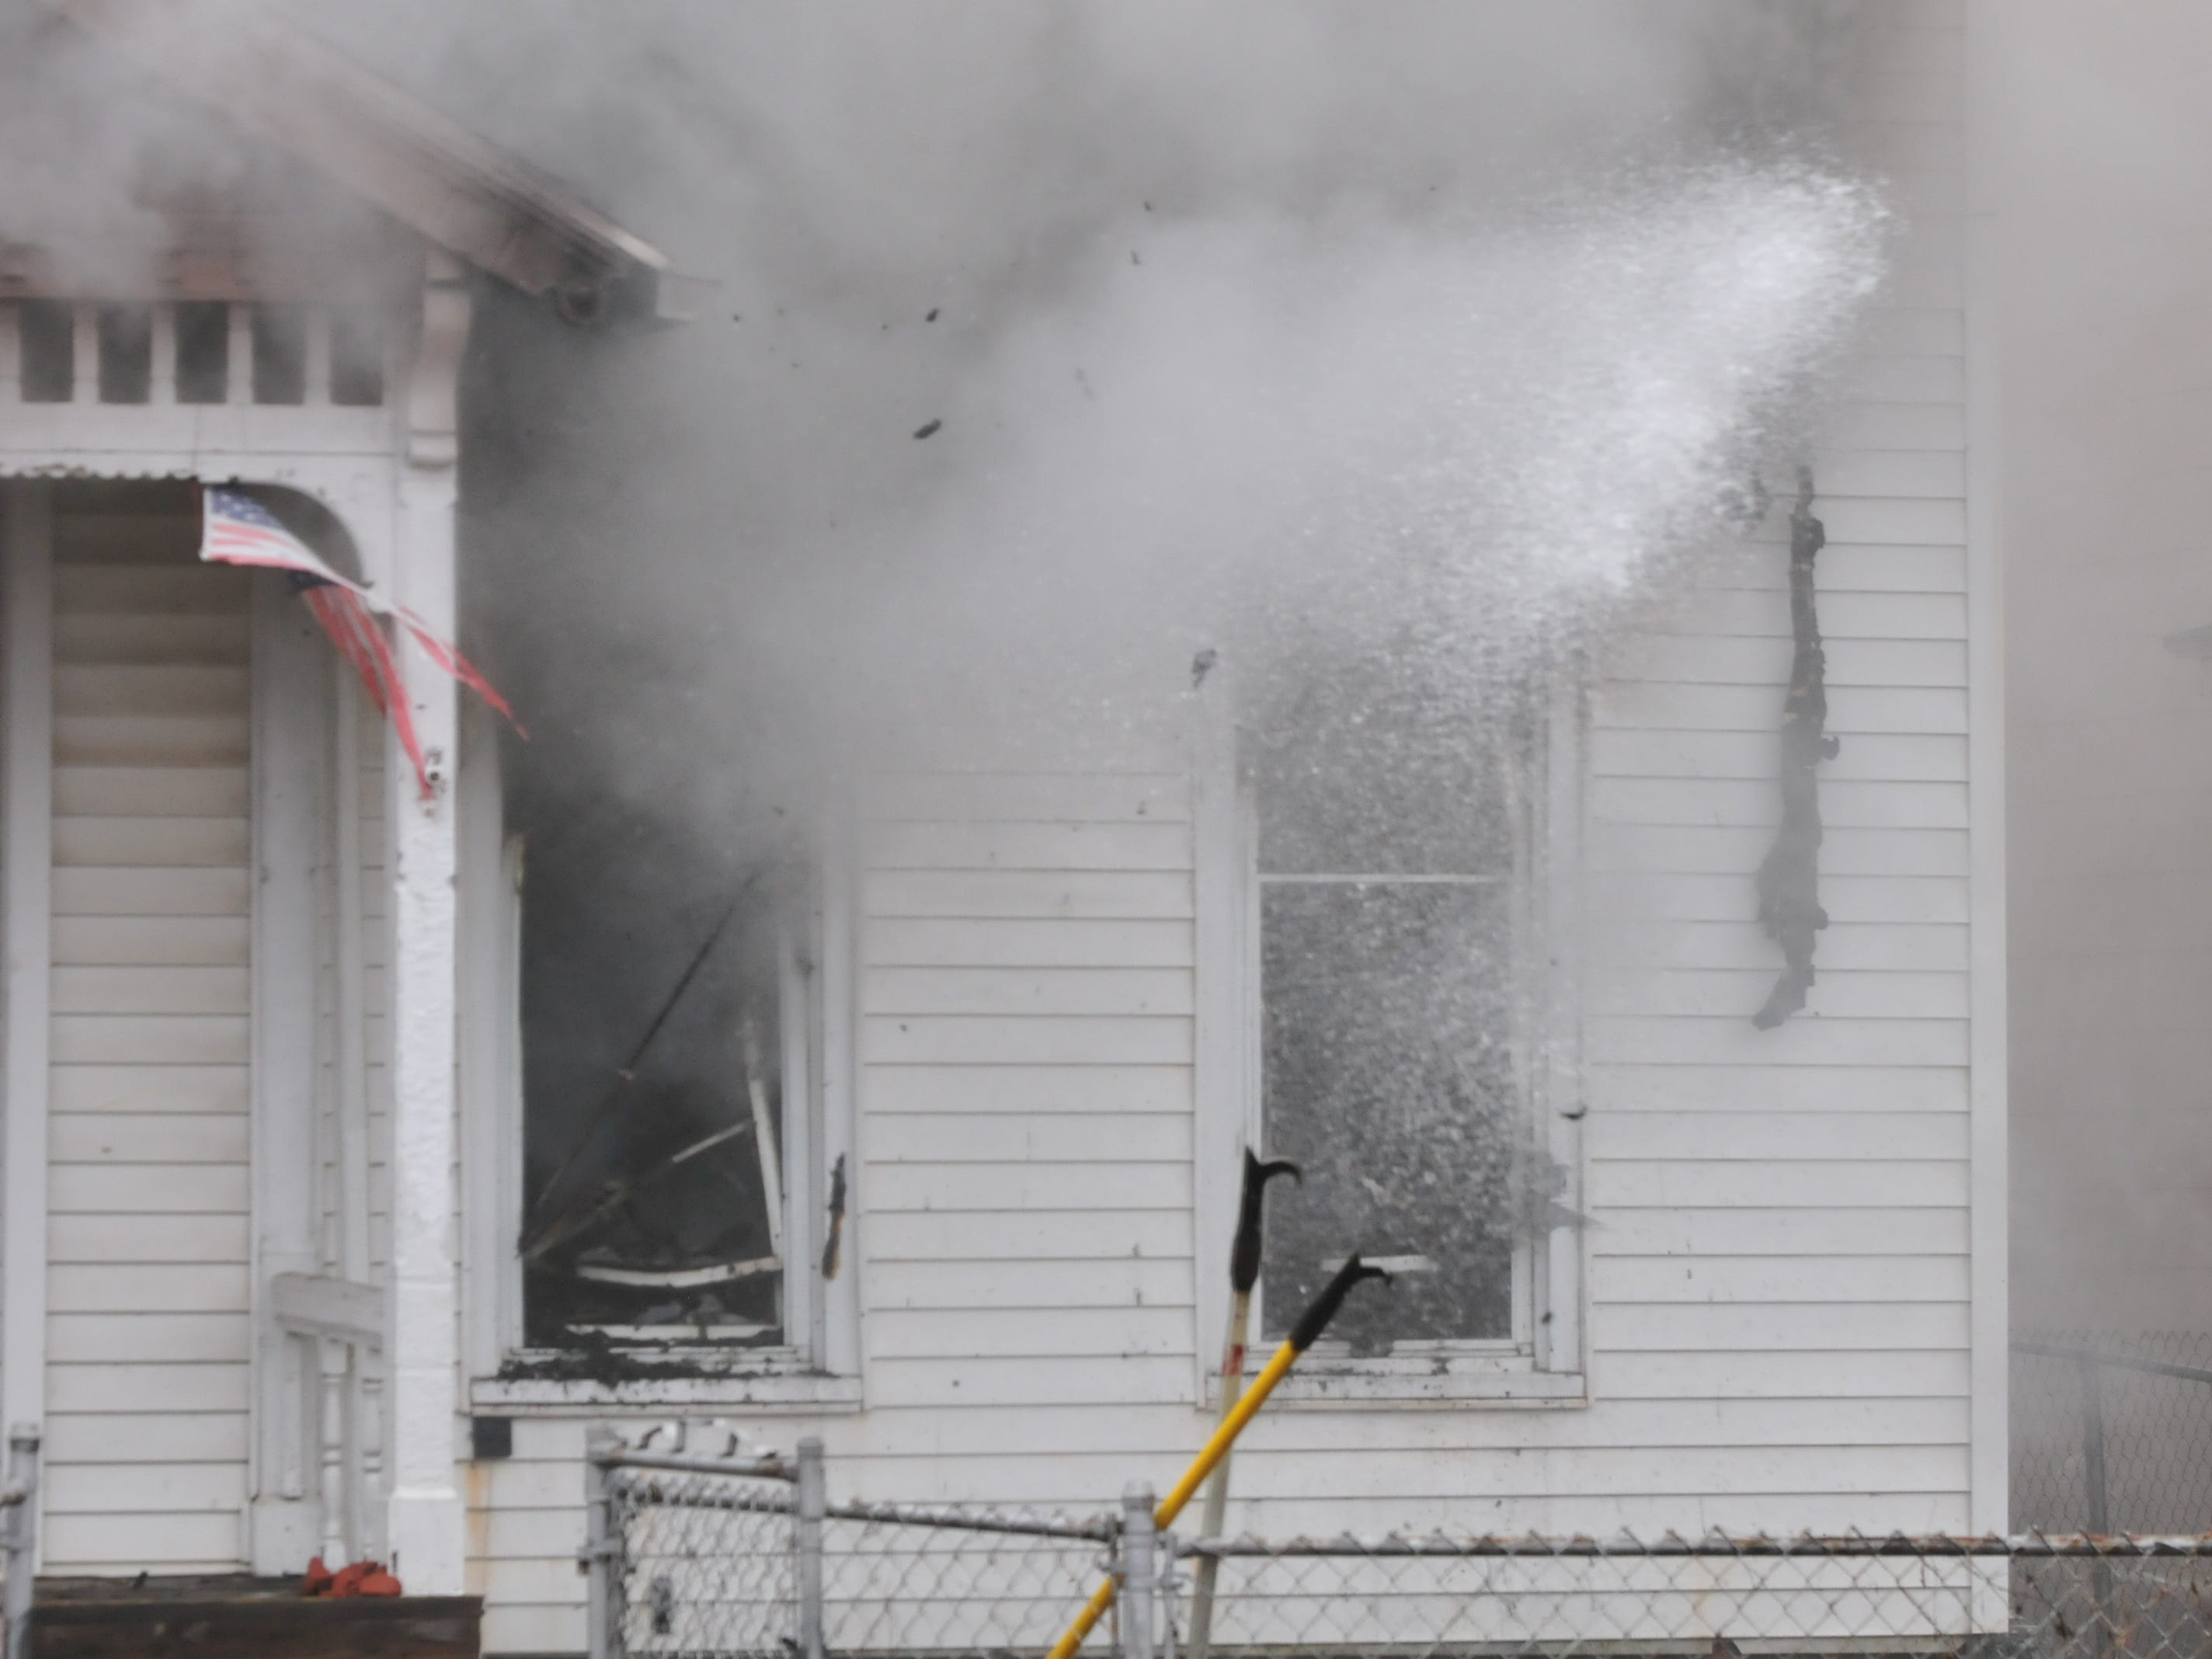 Water flies from a broken-out window as Richmond Fire Department personnel sprays a fire Wednesday inside 112 N. 18th St.